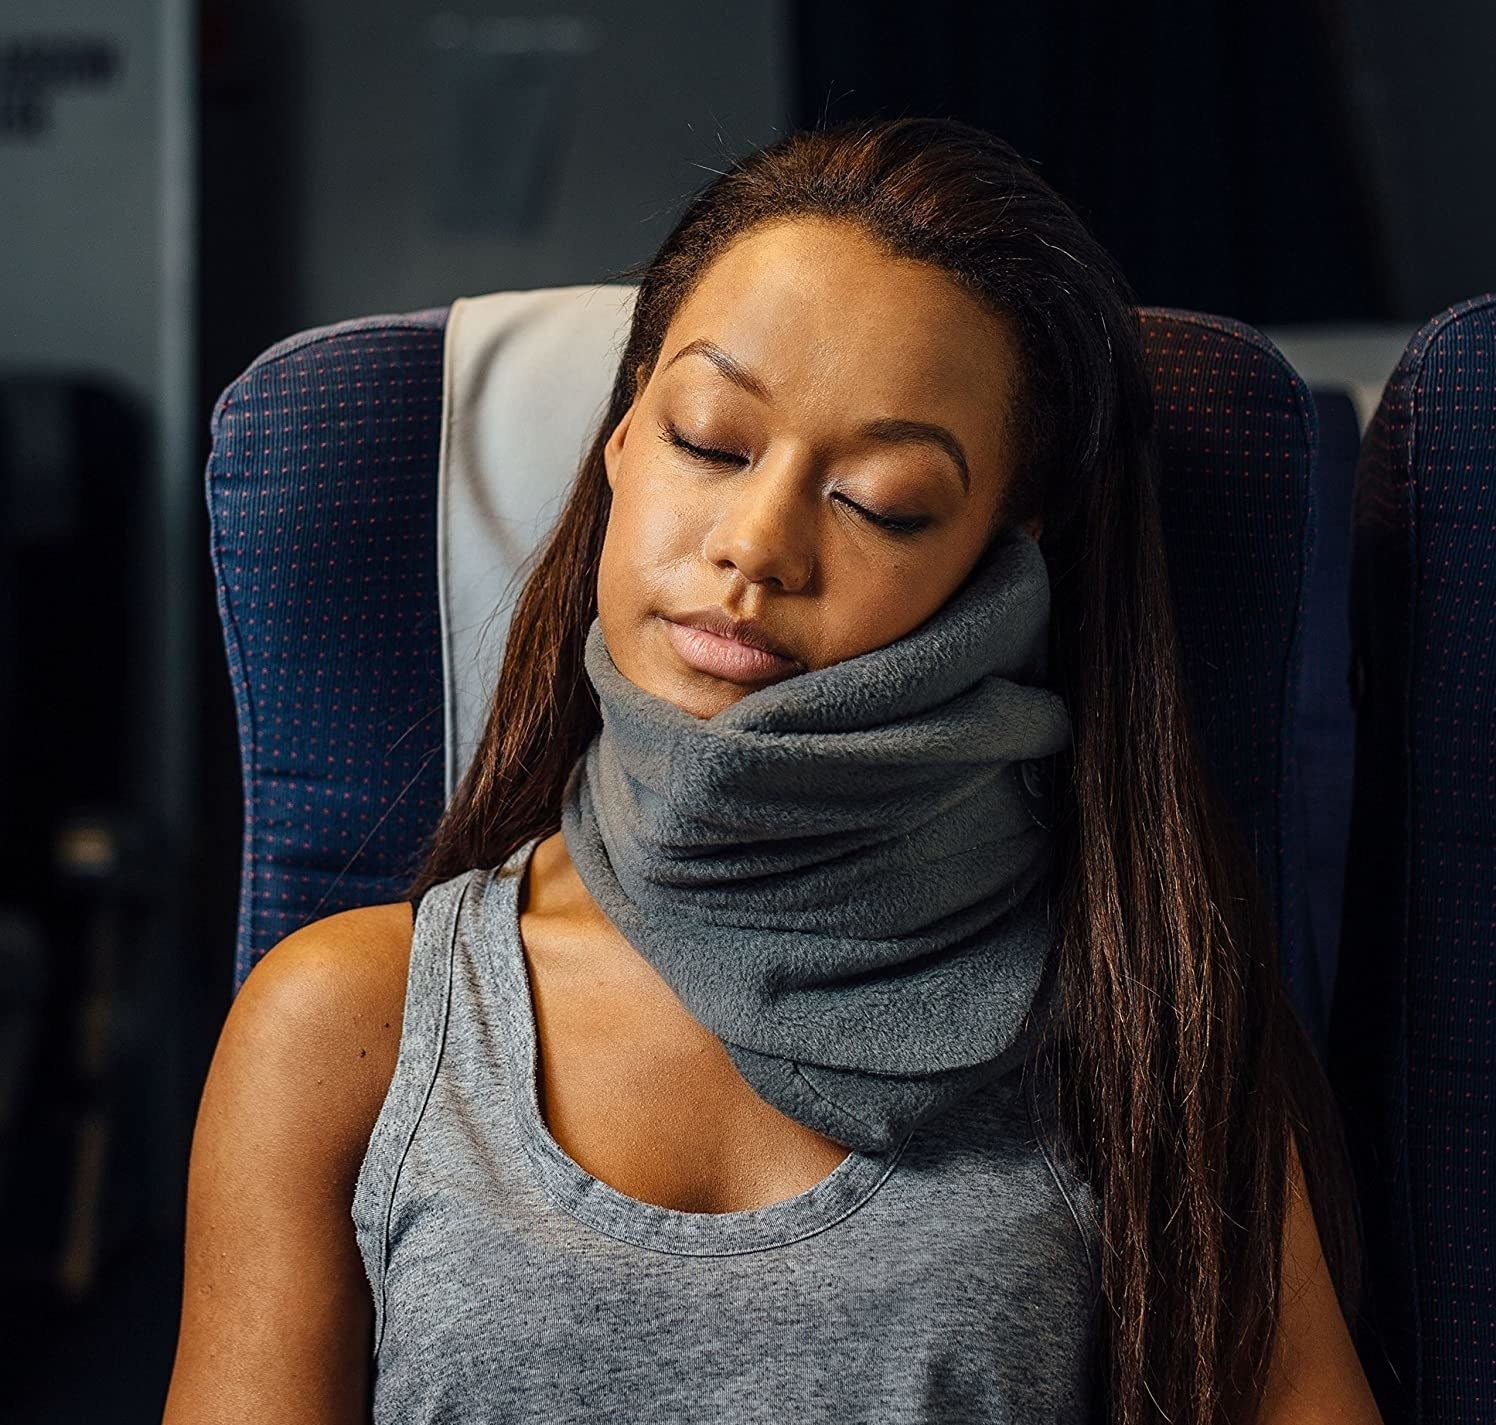 model wearing a gray trtl pillow while sleeping on a plane